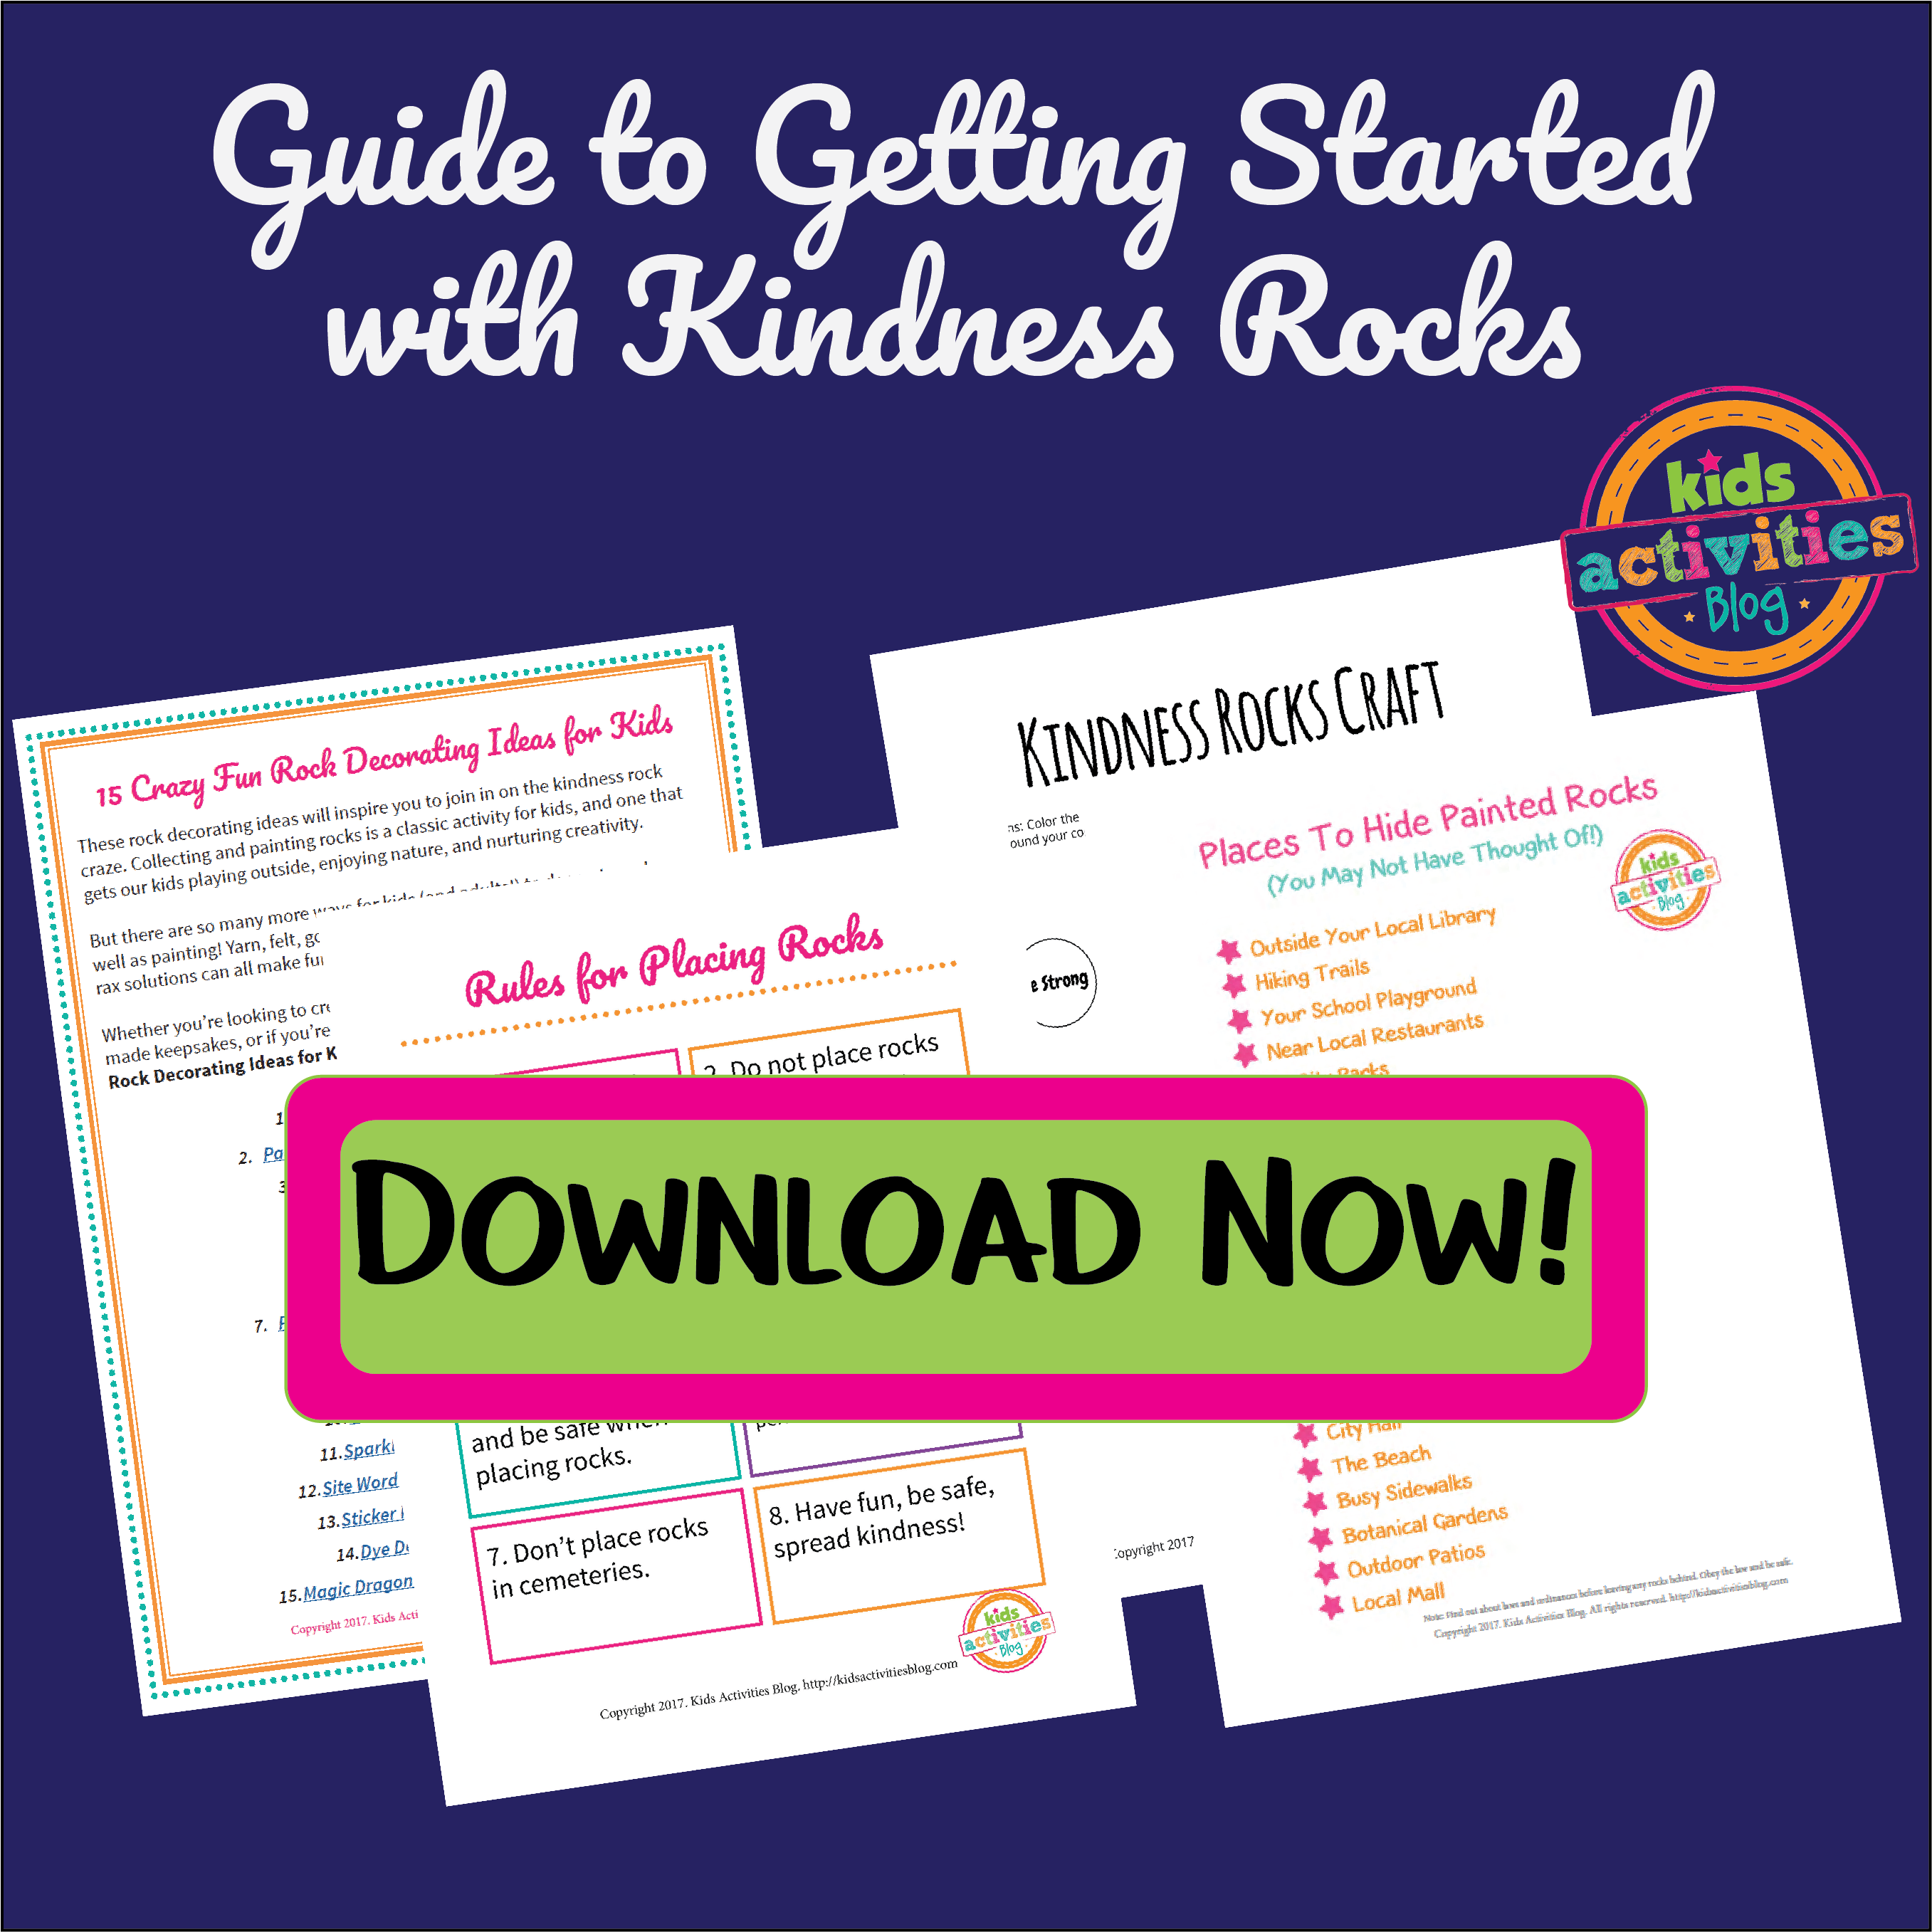 Download the Guide to Getting Started with Kindness Rocks